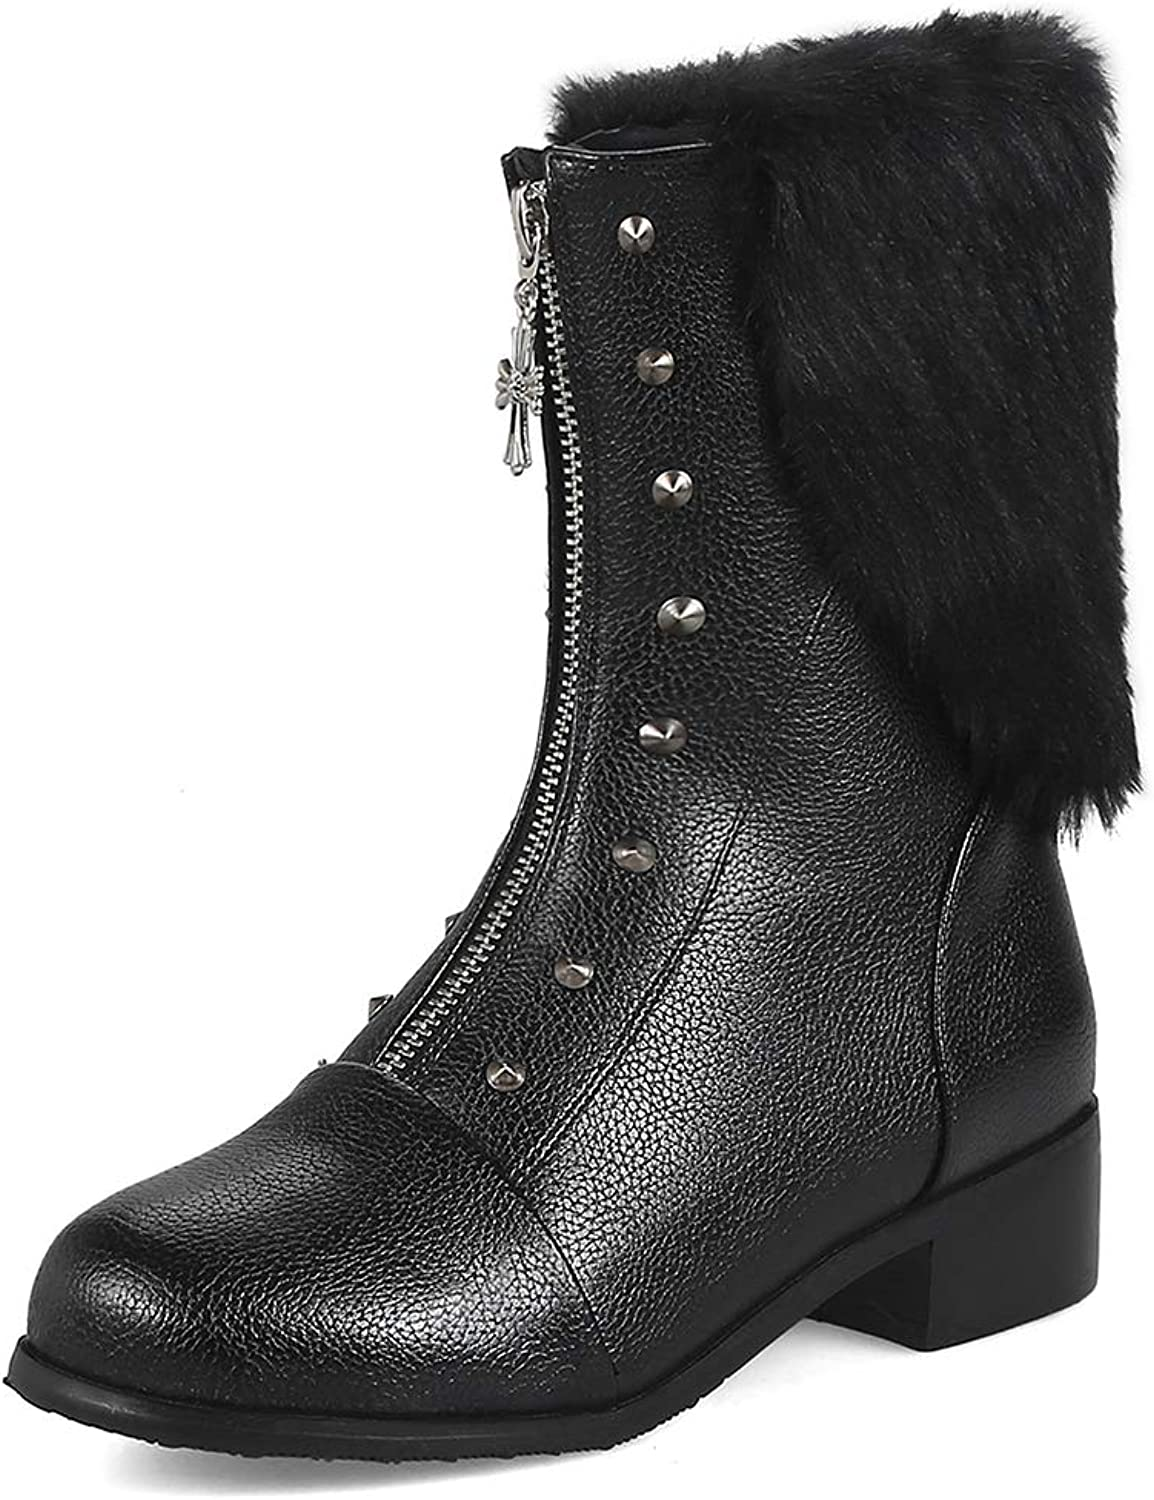 TWGDH Zip Front Leather Boots Mid-Calf Martin Boots Waterproof Non-Slip Fur Lined Outdoor Low Heel shoes